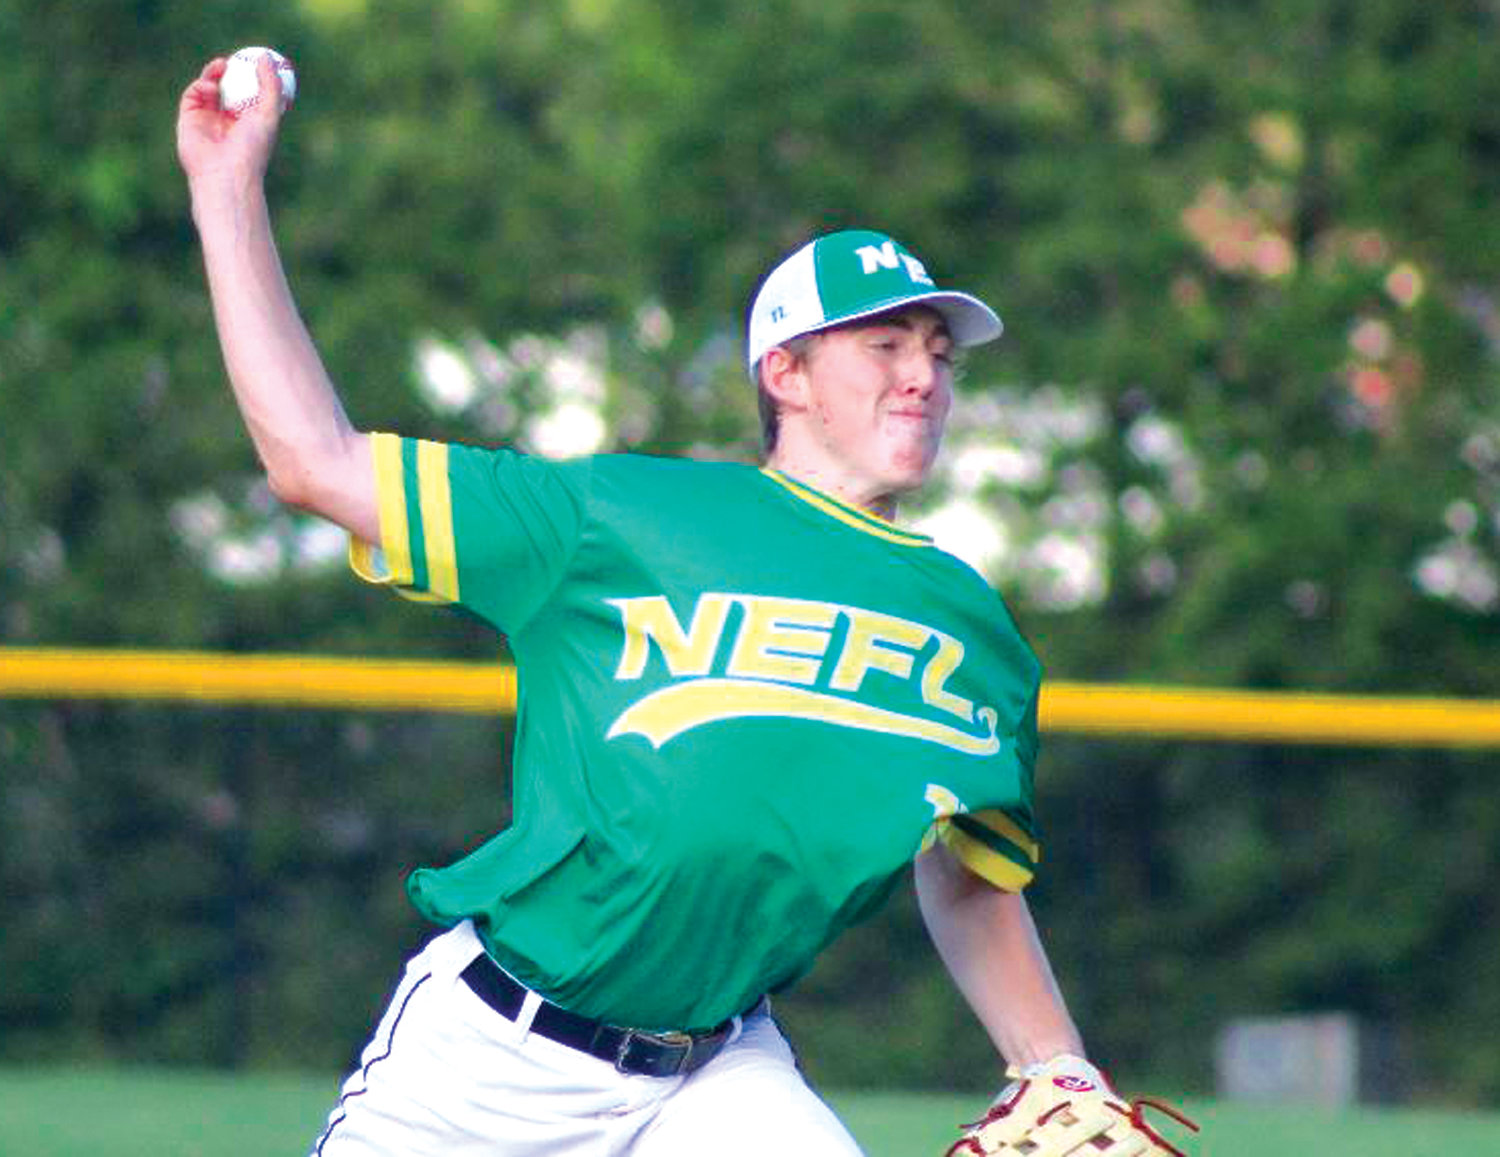 ON THE HILL: NEFL pitcher Jack Gannon deals against Navigant.